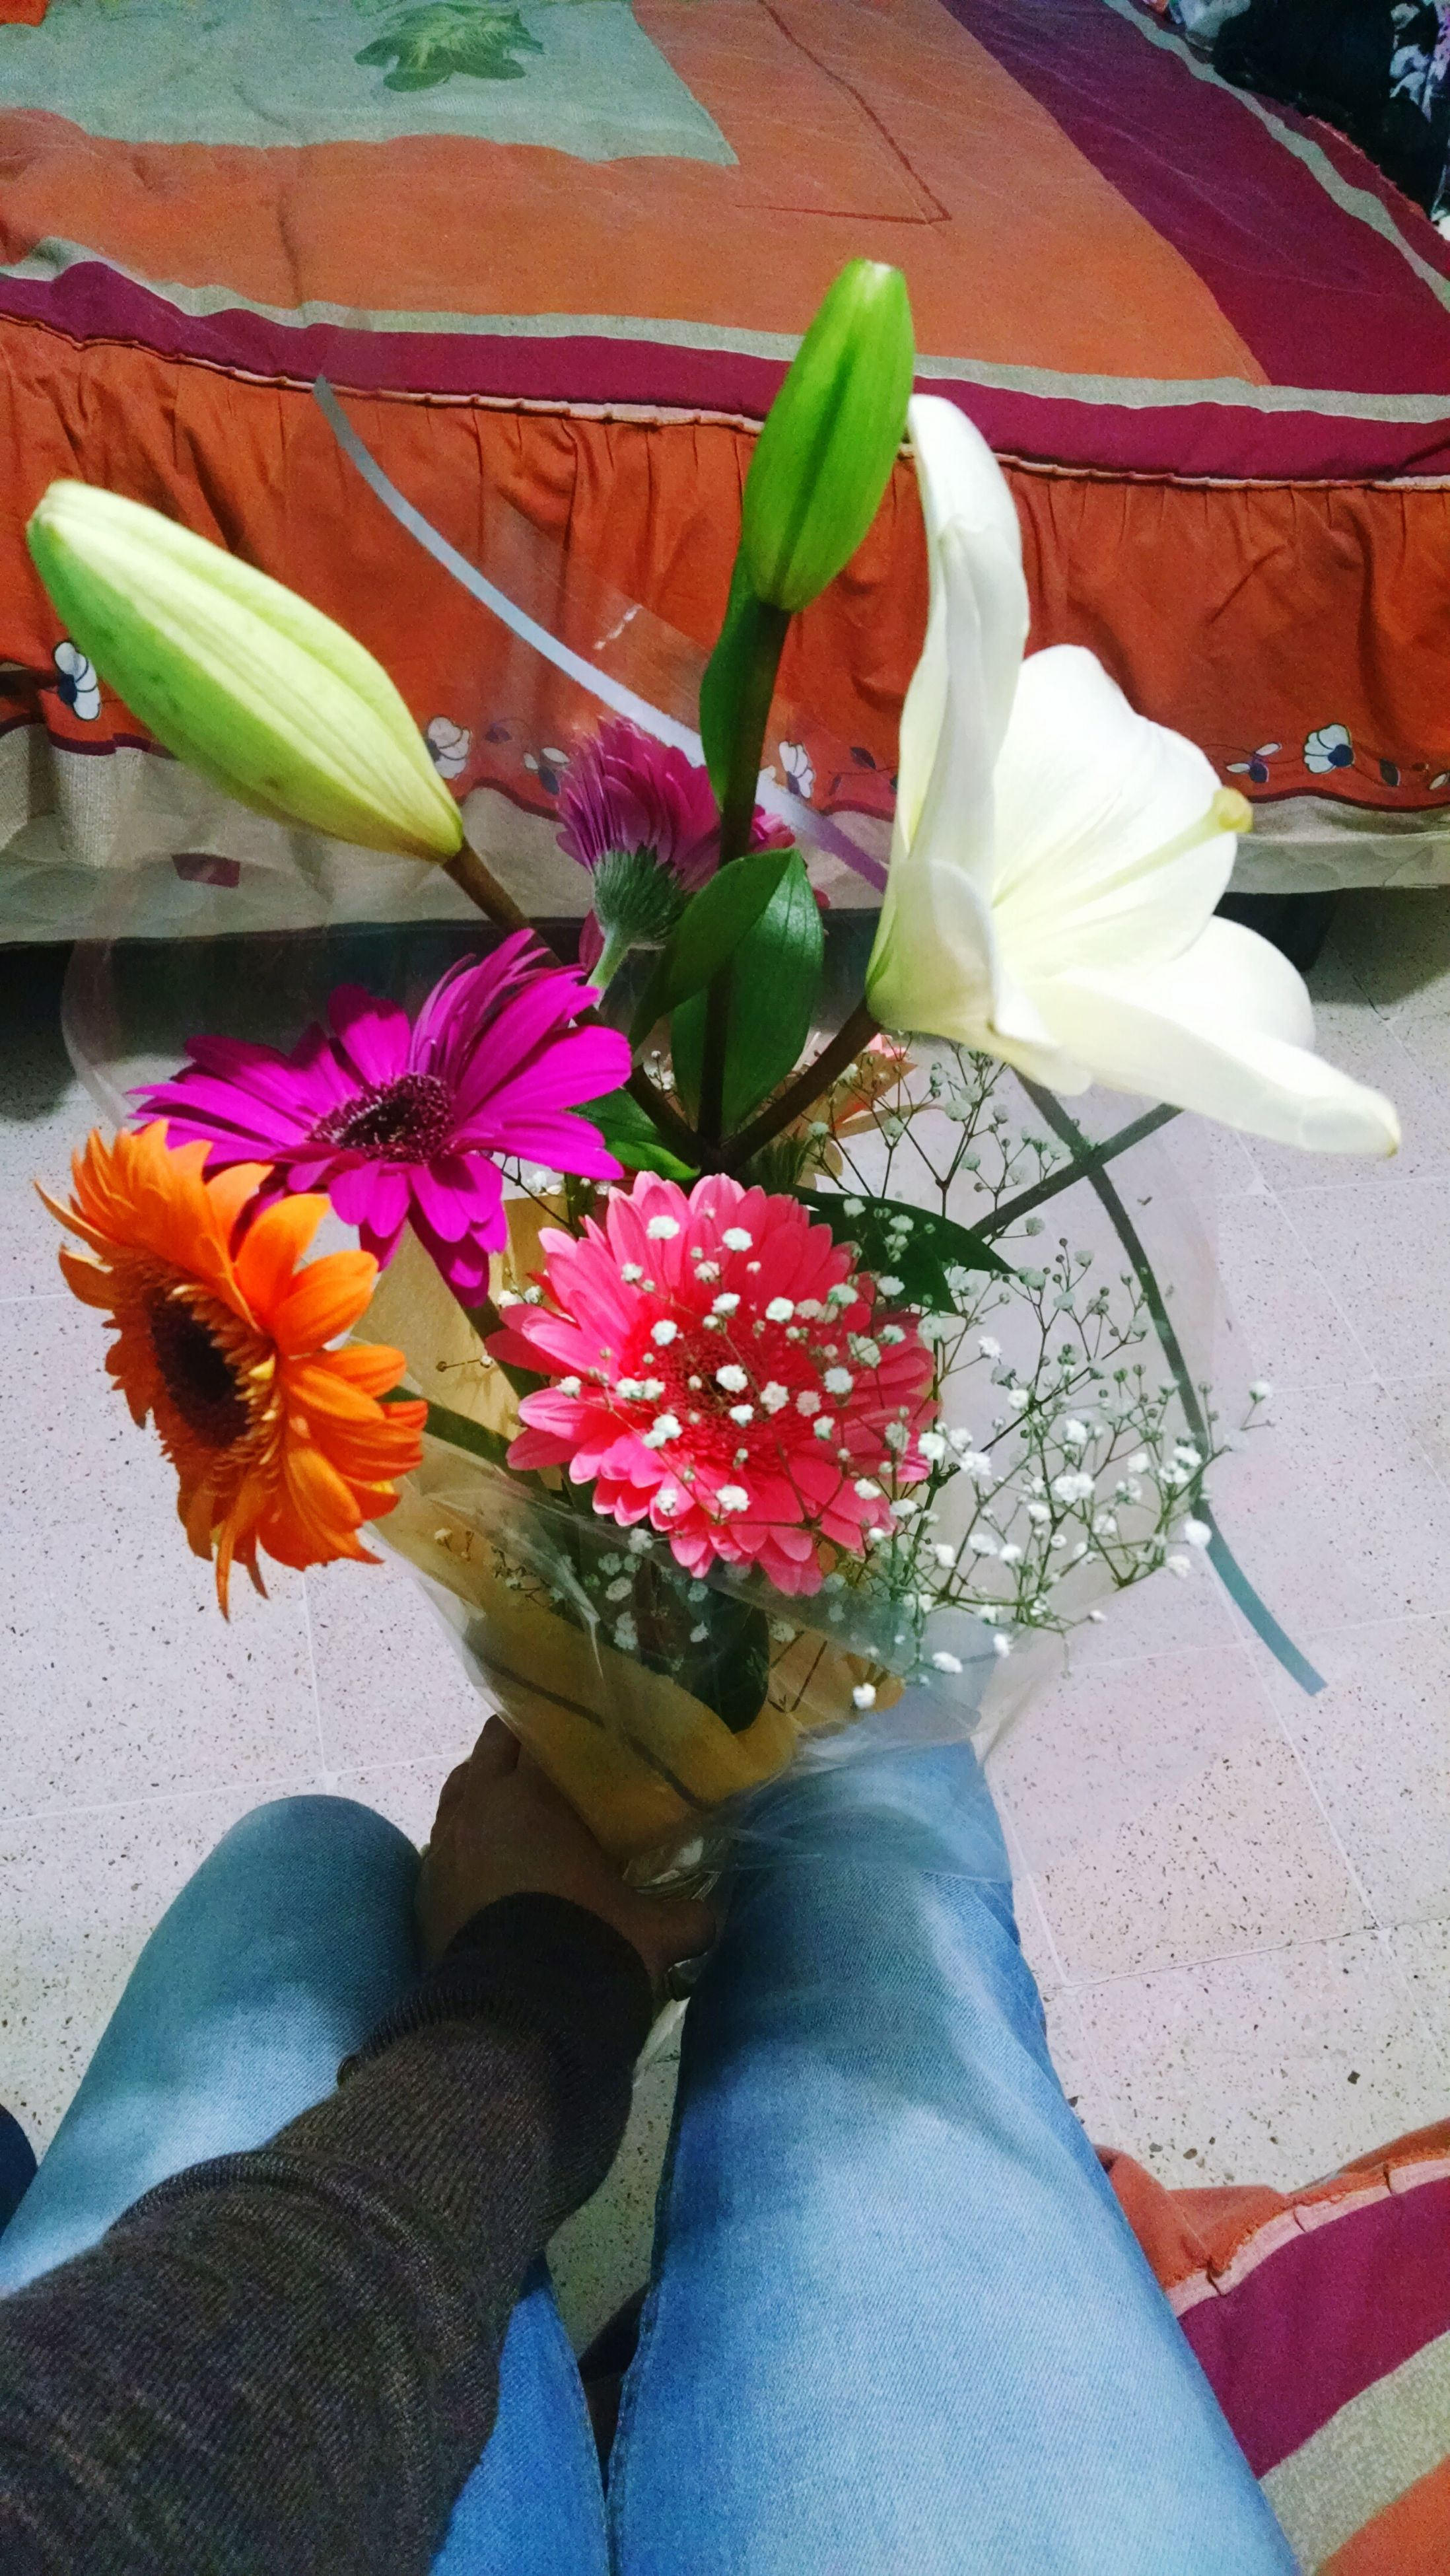 flower, freshness, petal, fragility, high angle view, leaf, flower head, personal perspective, indoors, potted plant, plant, bouquet, red, vase, table, low section, close-up, person